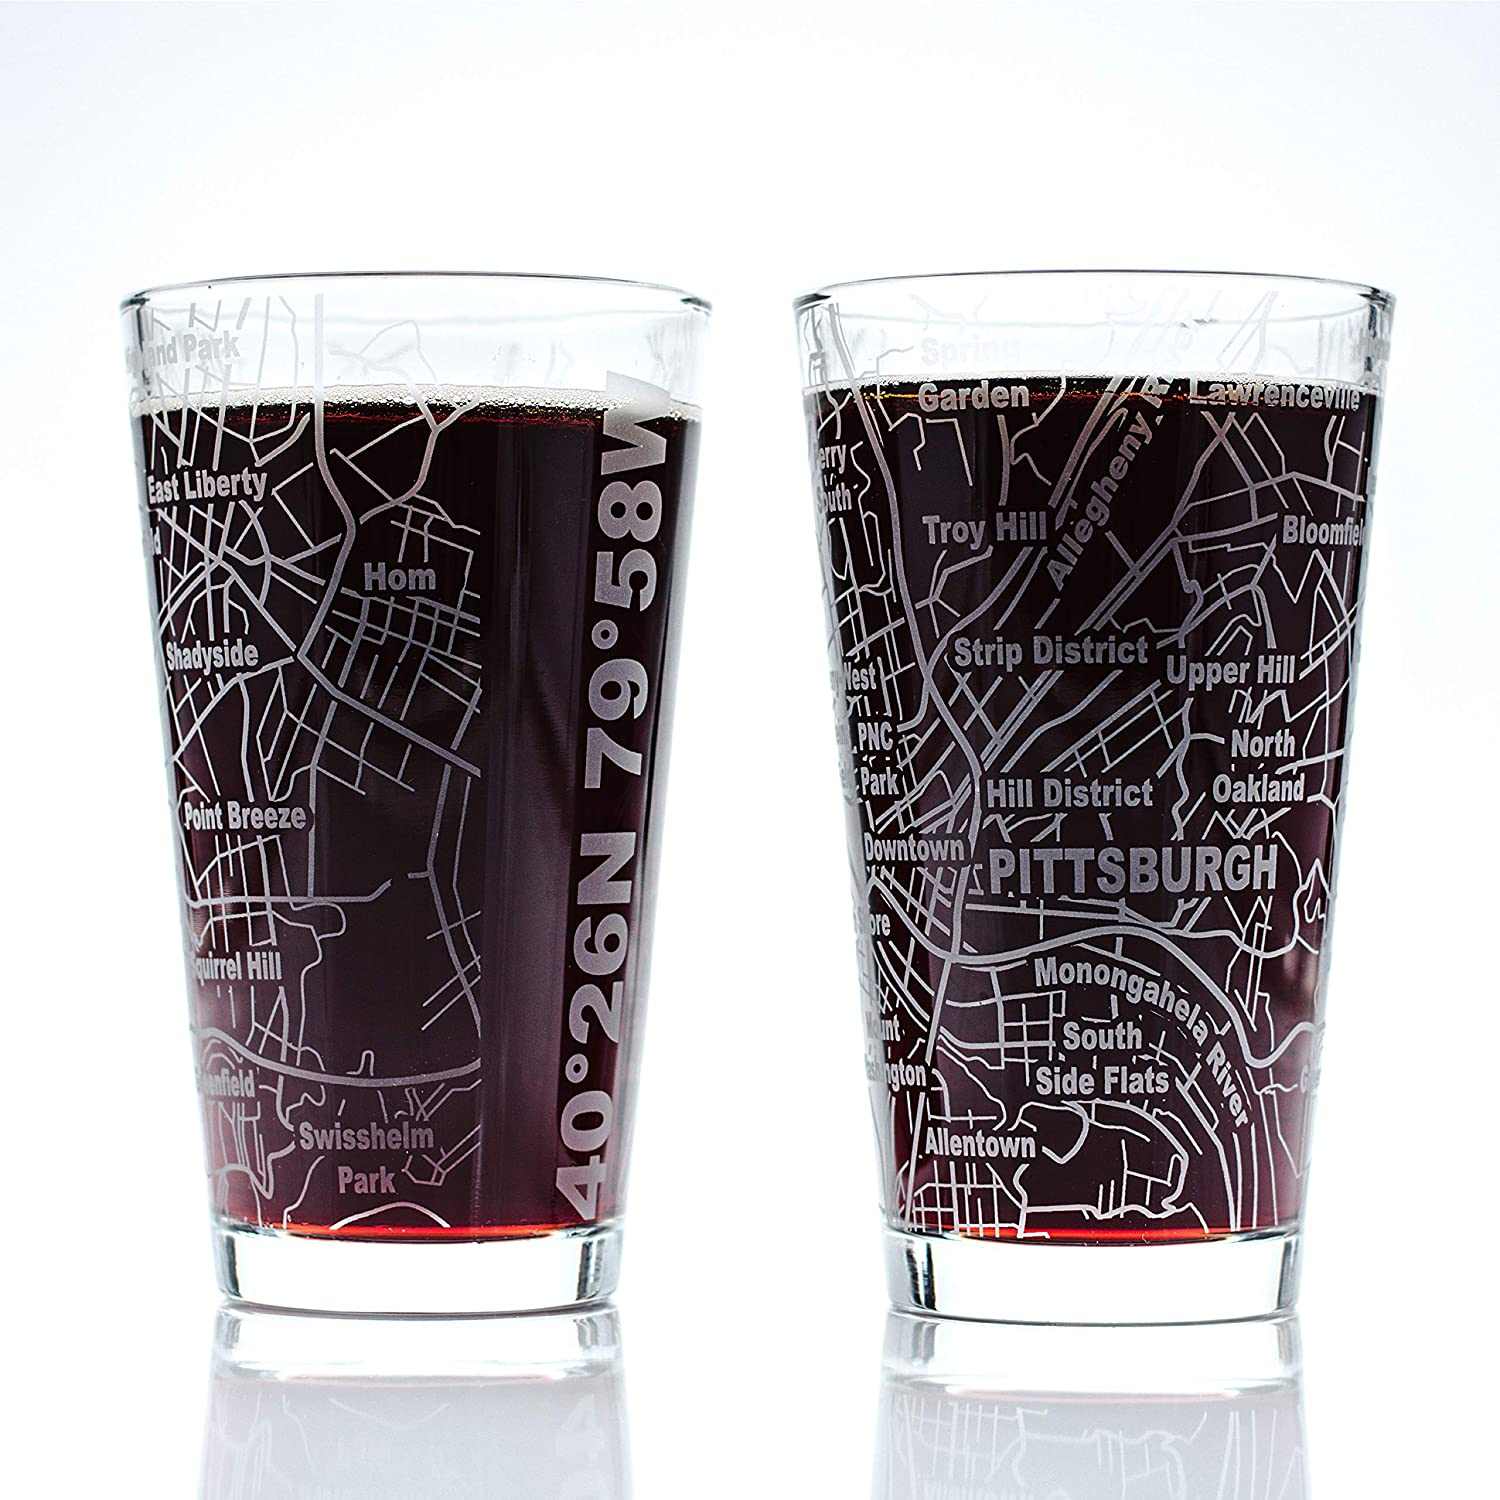 Greenline Goods Beer Glasses - 16 oz Drinkware Set for Pittsburgh lovers | Set of 2 | Etched with Pittsburgh, IL Map | Premium Decorative Glassware